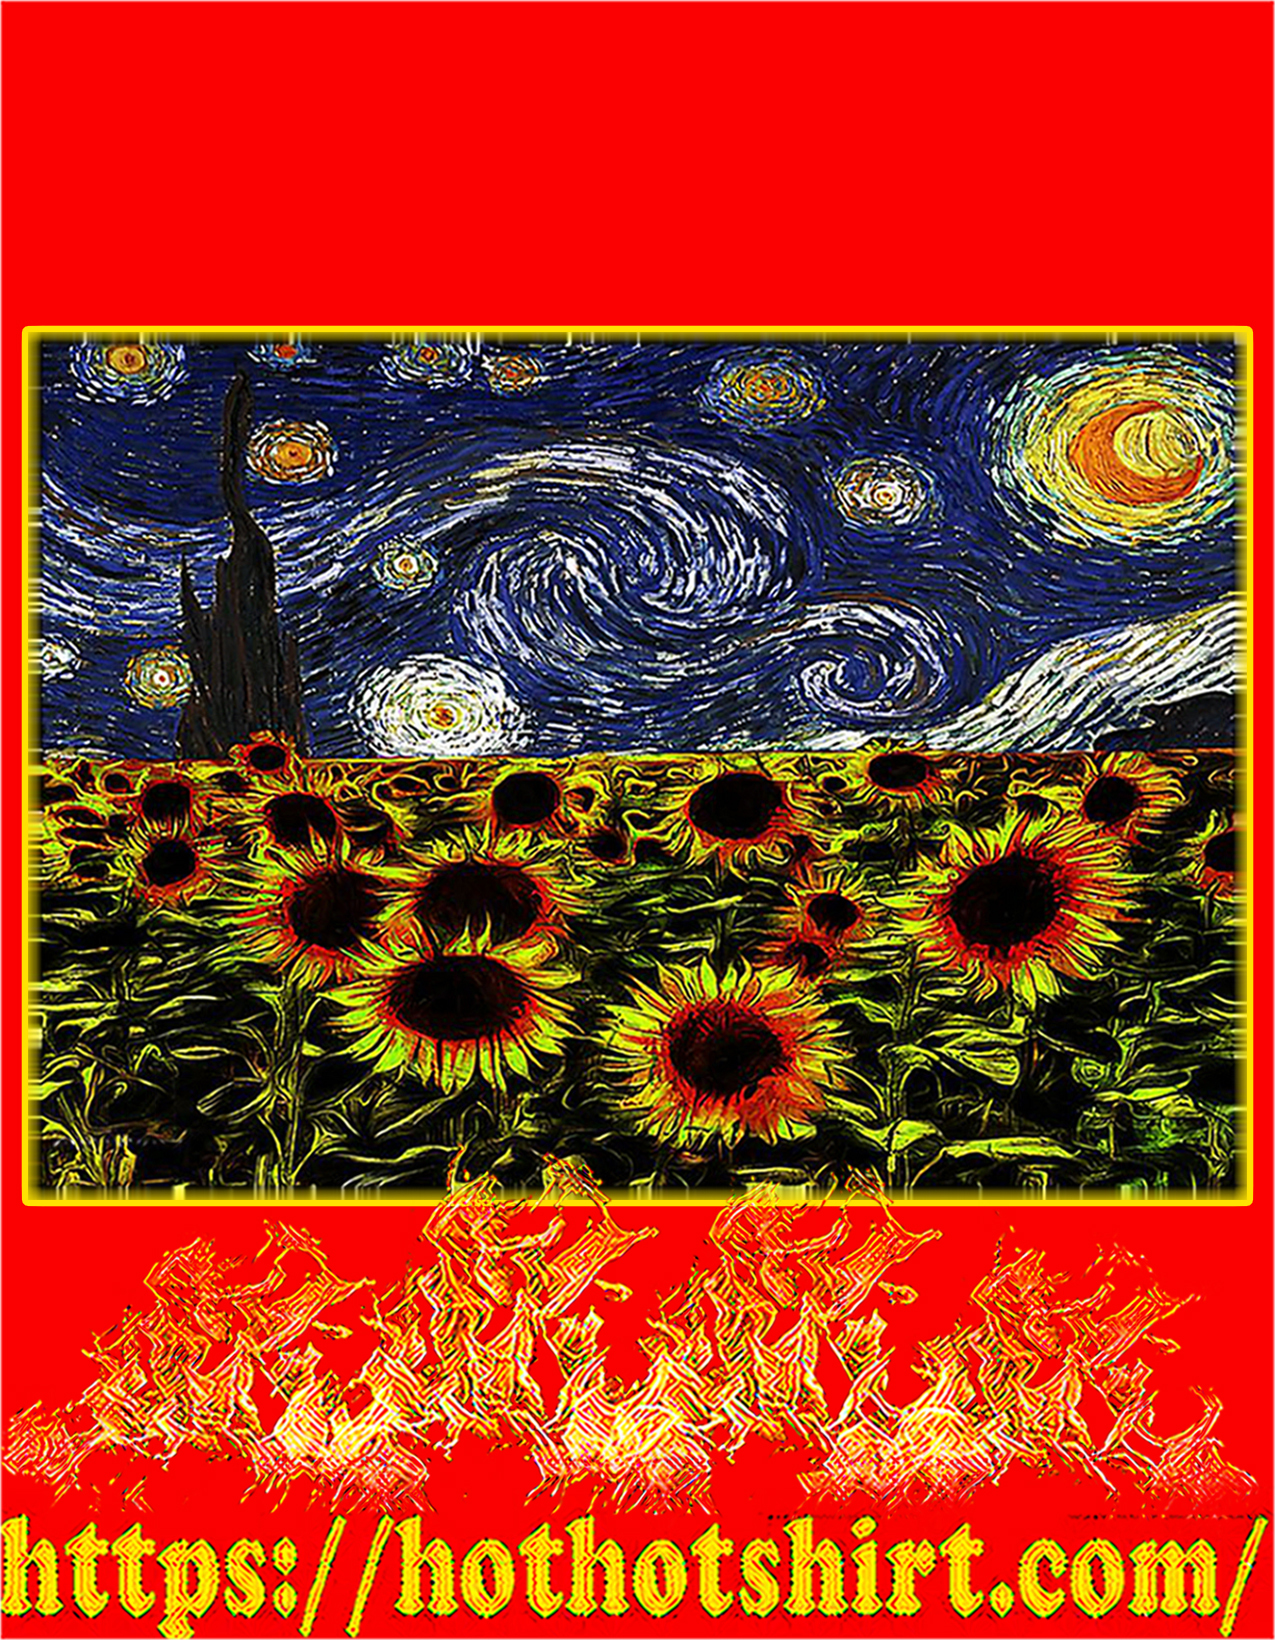 Sunflowers starry night van gogh poster - A2